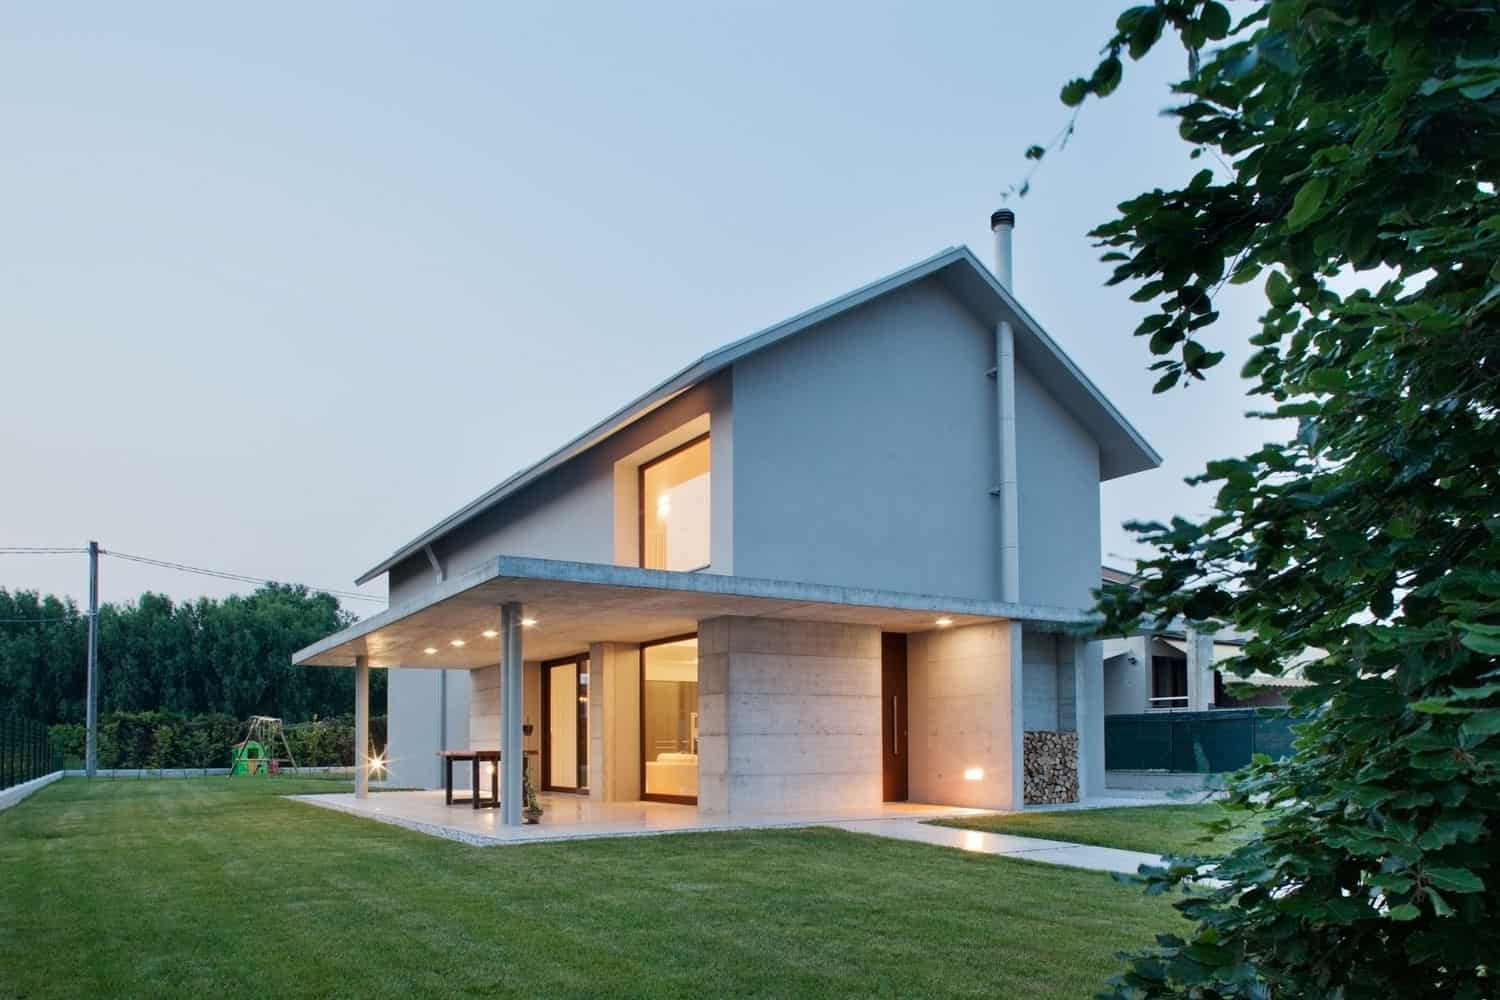 Residential HOME Designed by MIDE Architects, in Italy